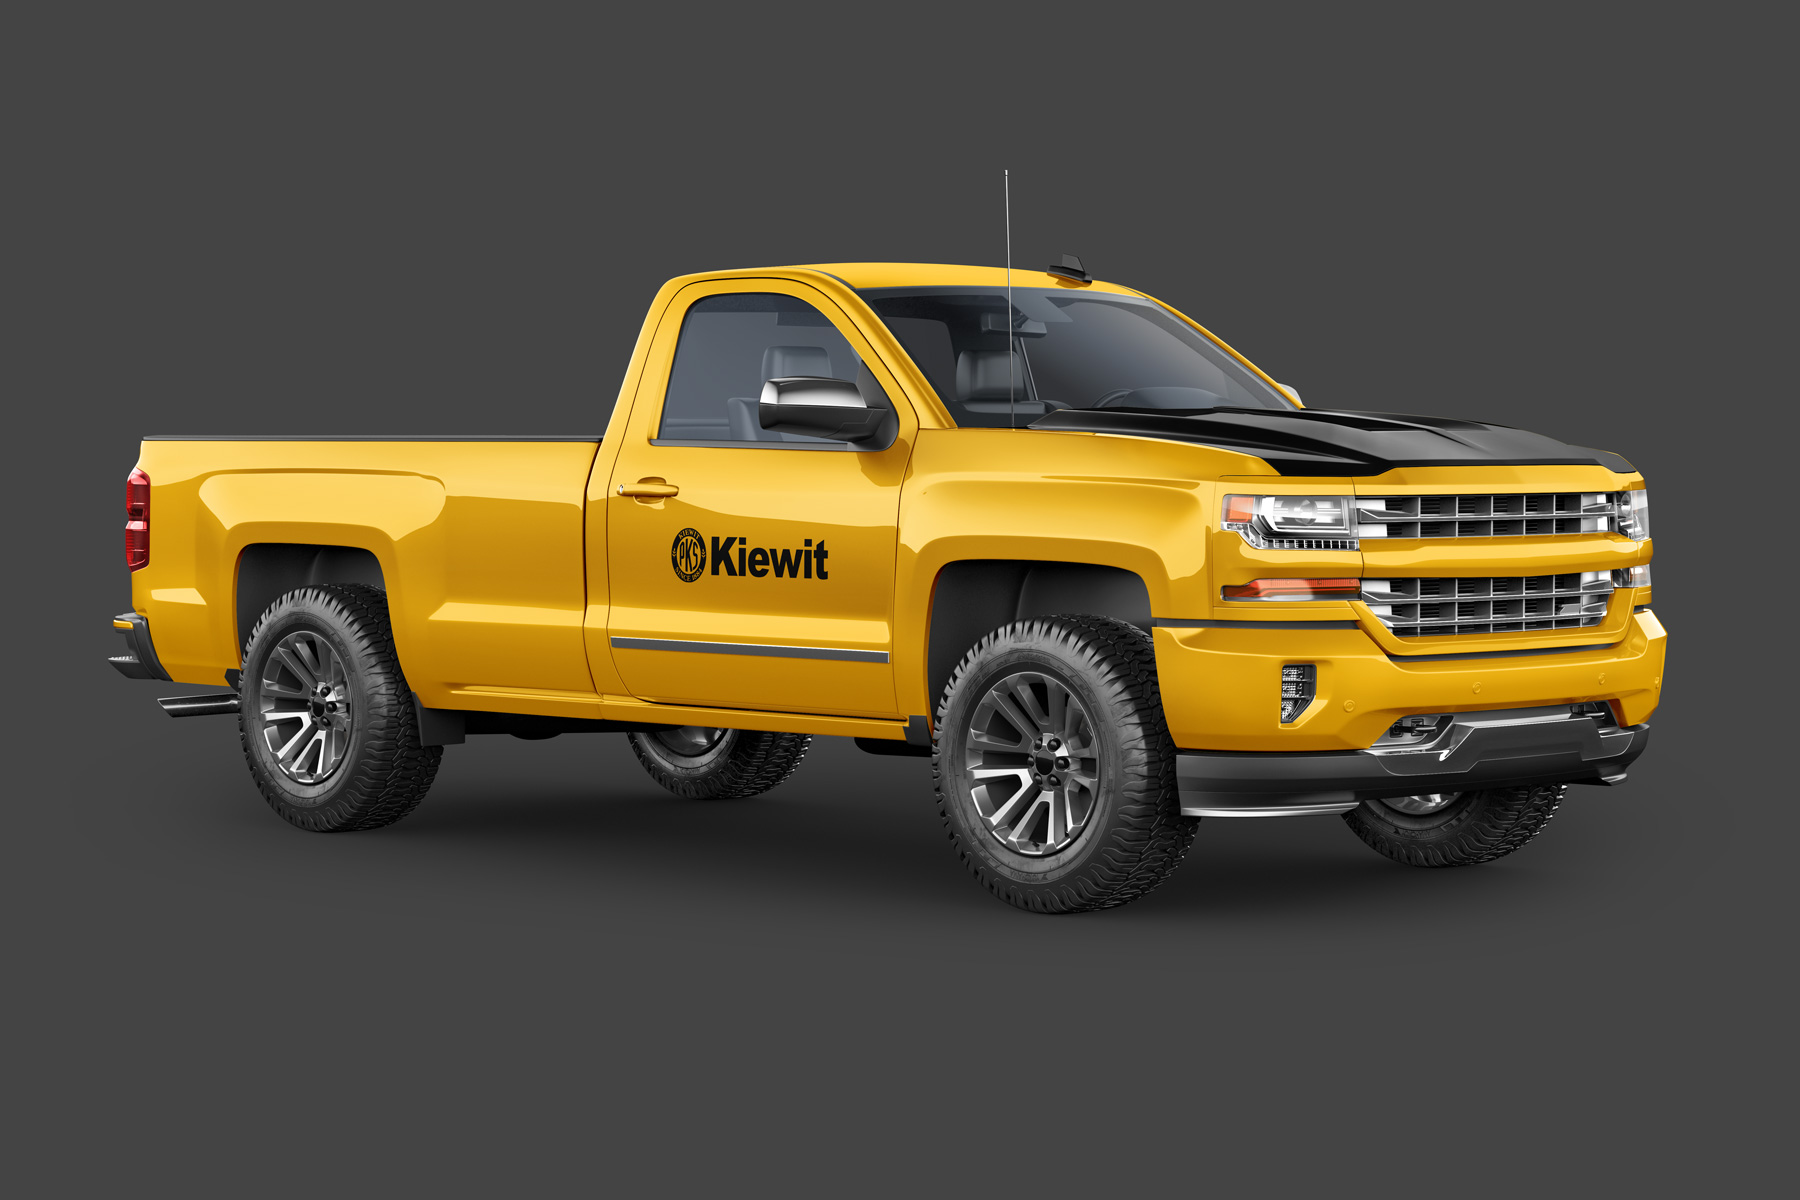 Kiewit - Construction Company Logo on a Truck